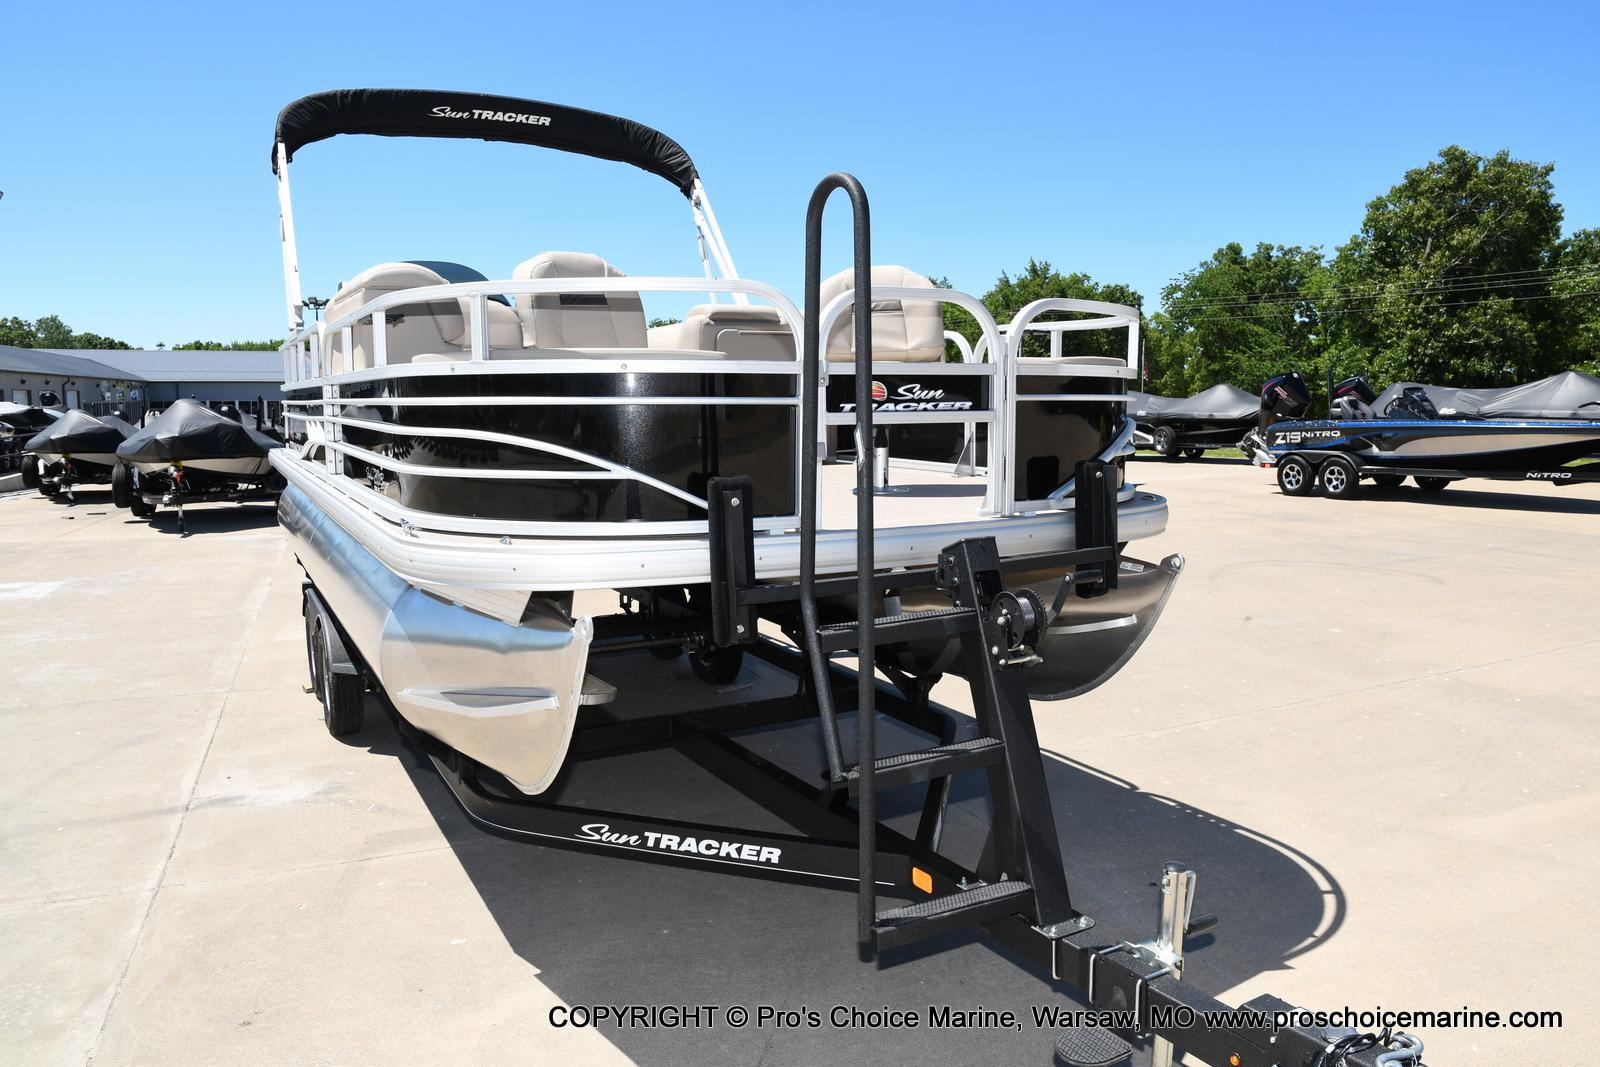 2021 Sun Tracker boat for sale, model of the boat is Fishin' Barge 20 DLX & Image # 40 of 50